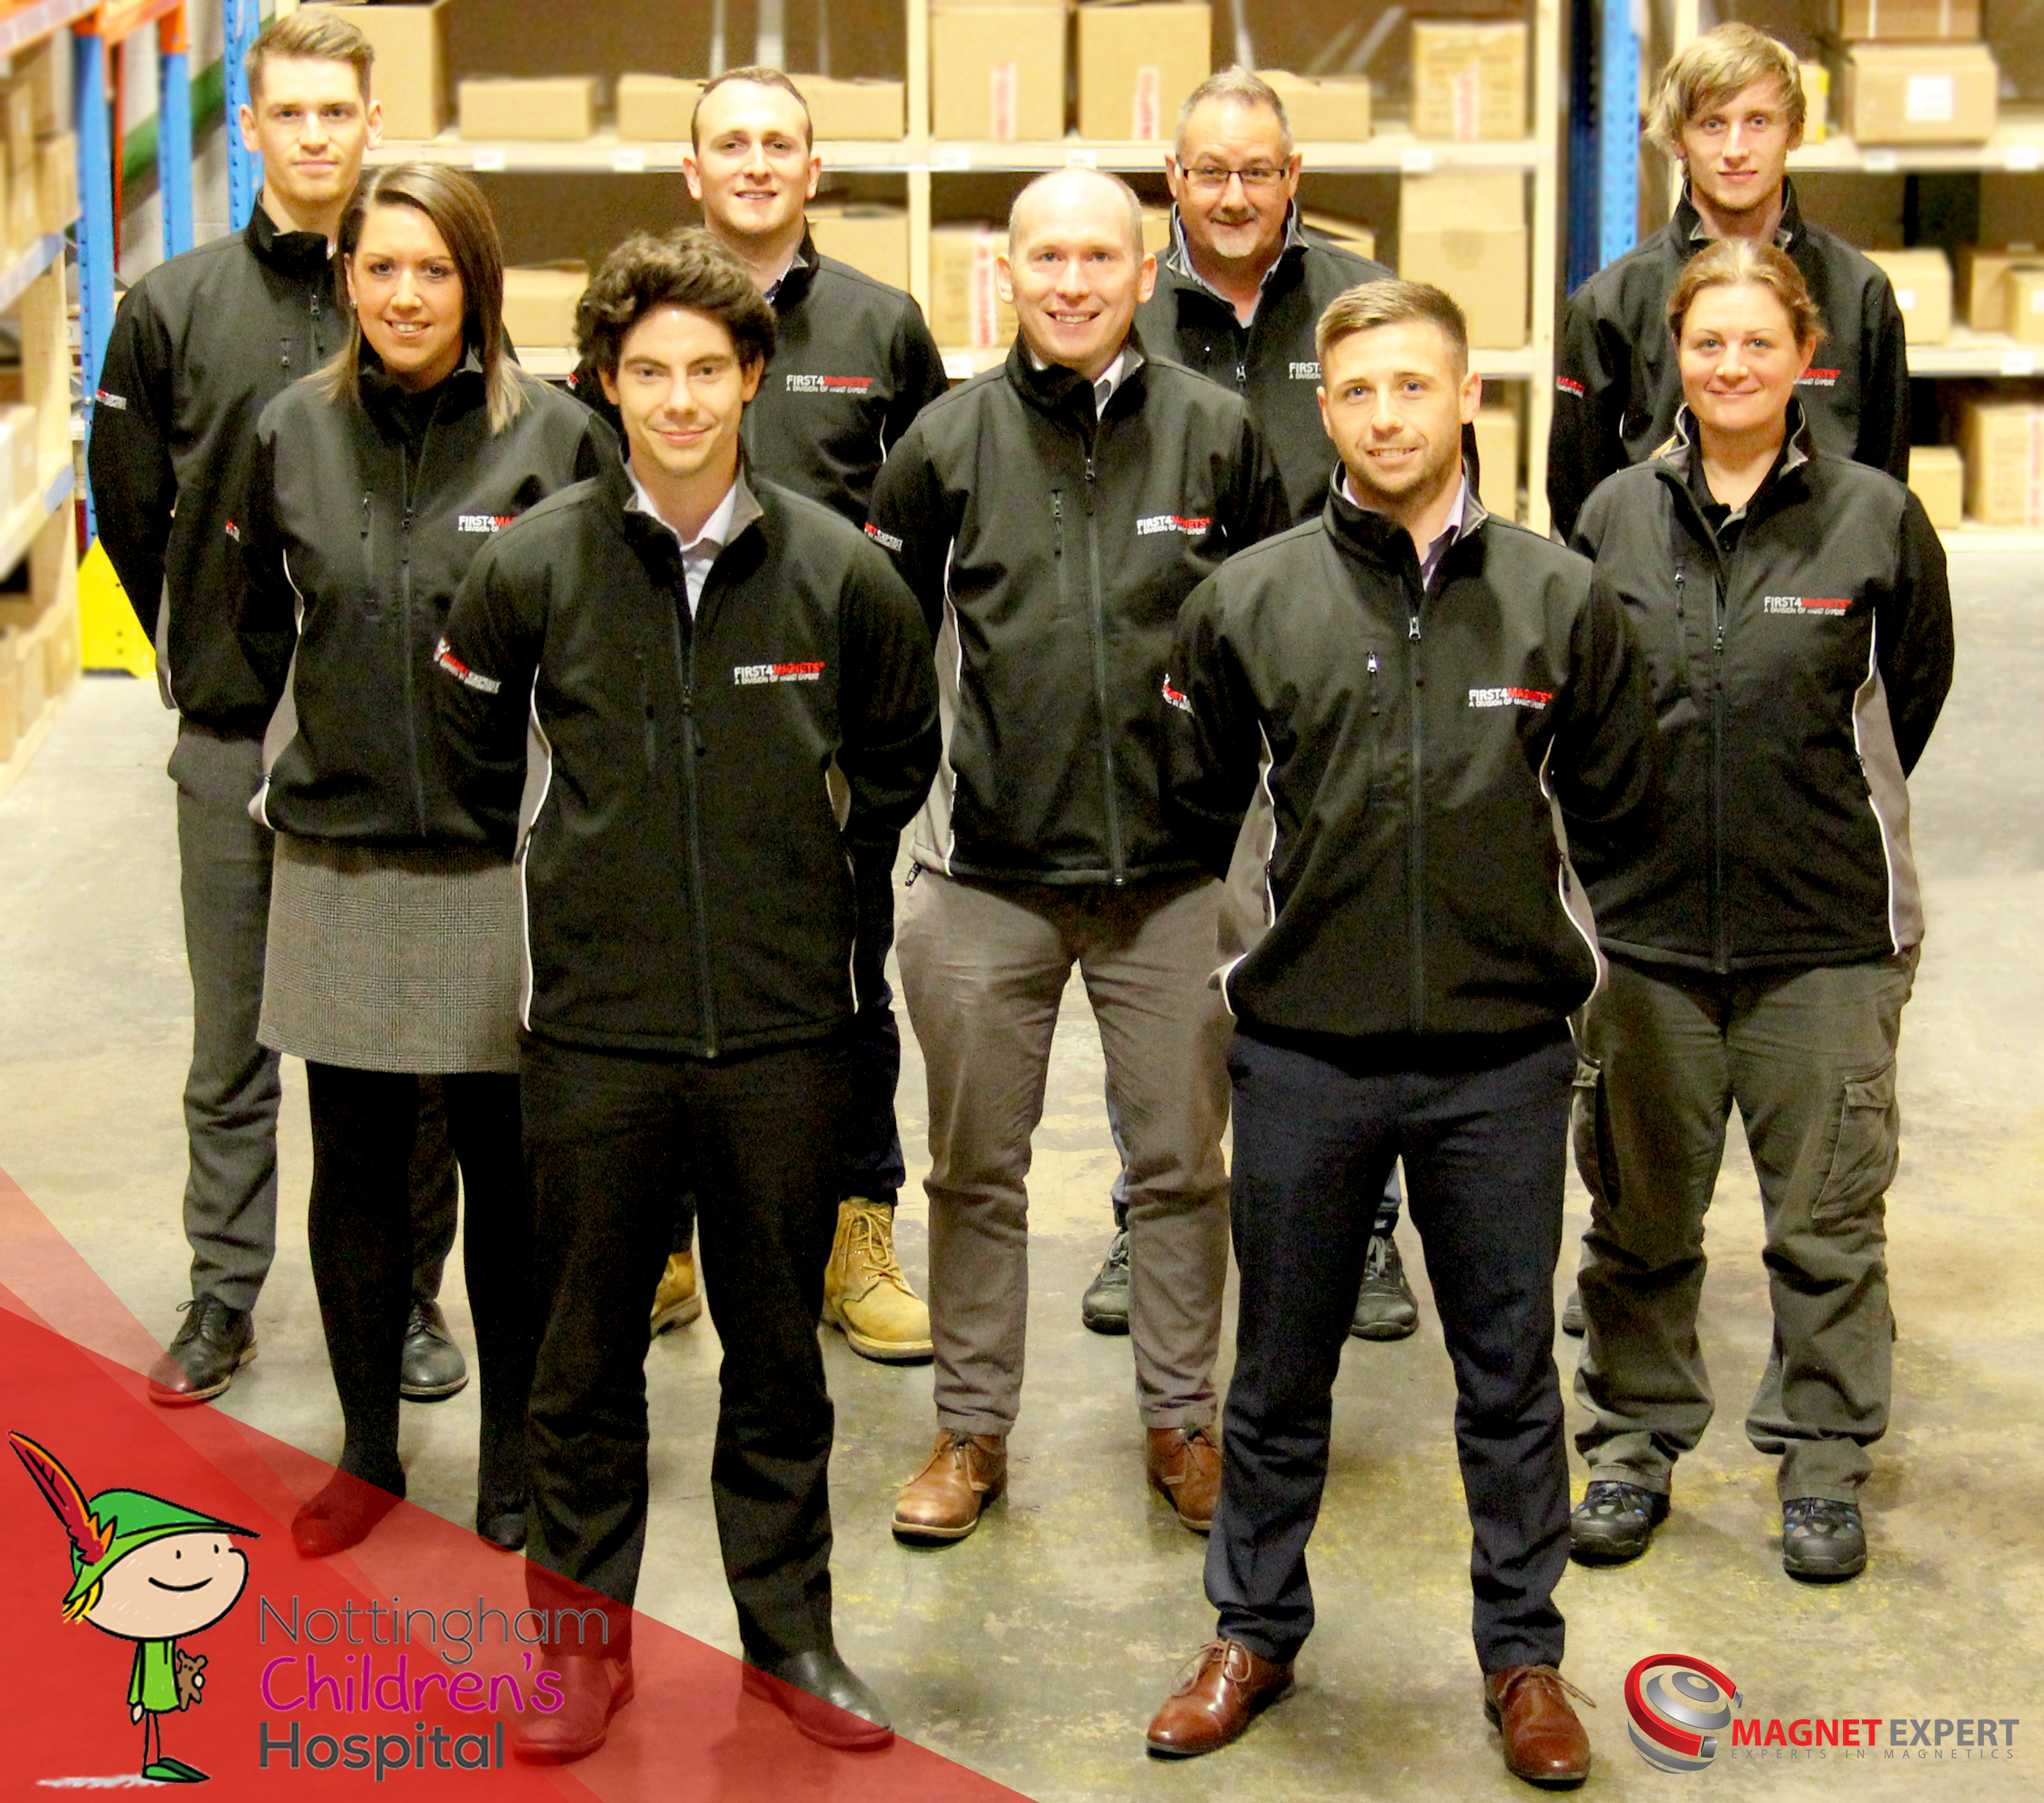 Magnet Expert Ltd celebrates 10 years in business